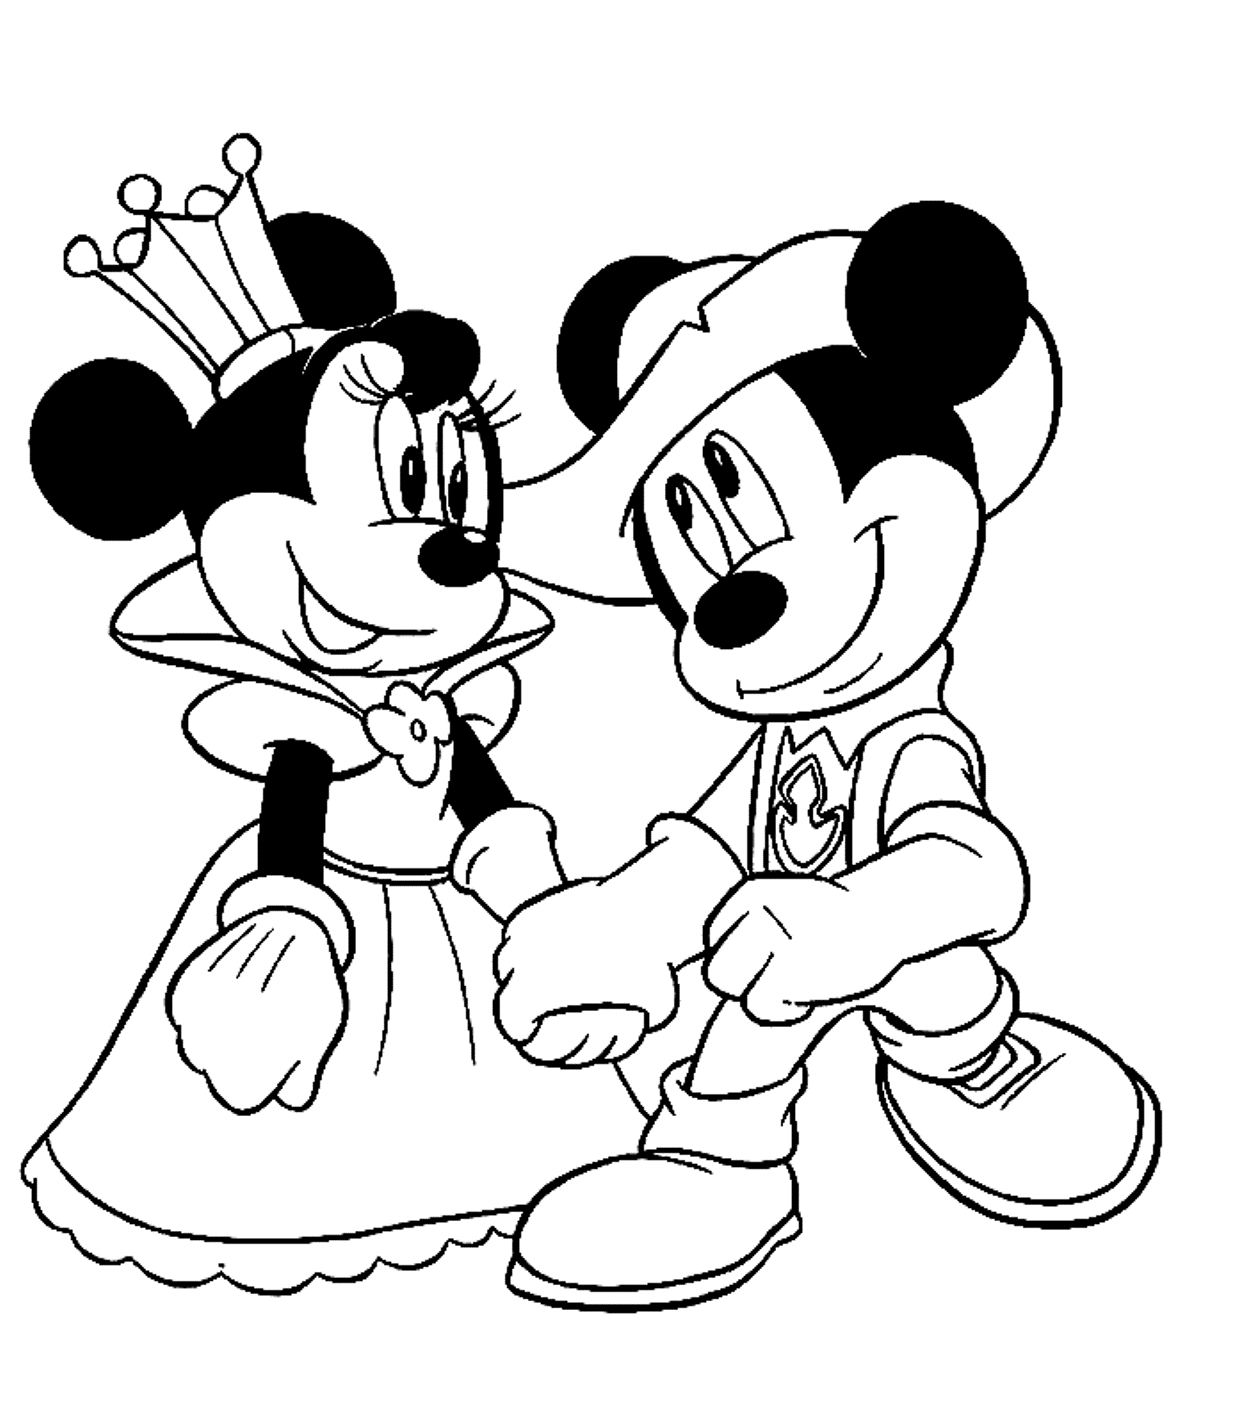 1246x1424 Micky Mouse Pencil Sketch Mickey Mouse Pencil Art Mickey Mouse